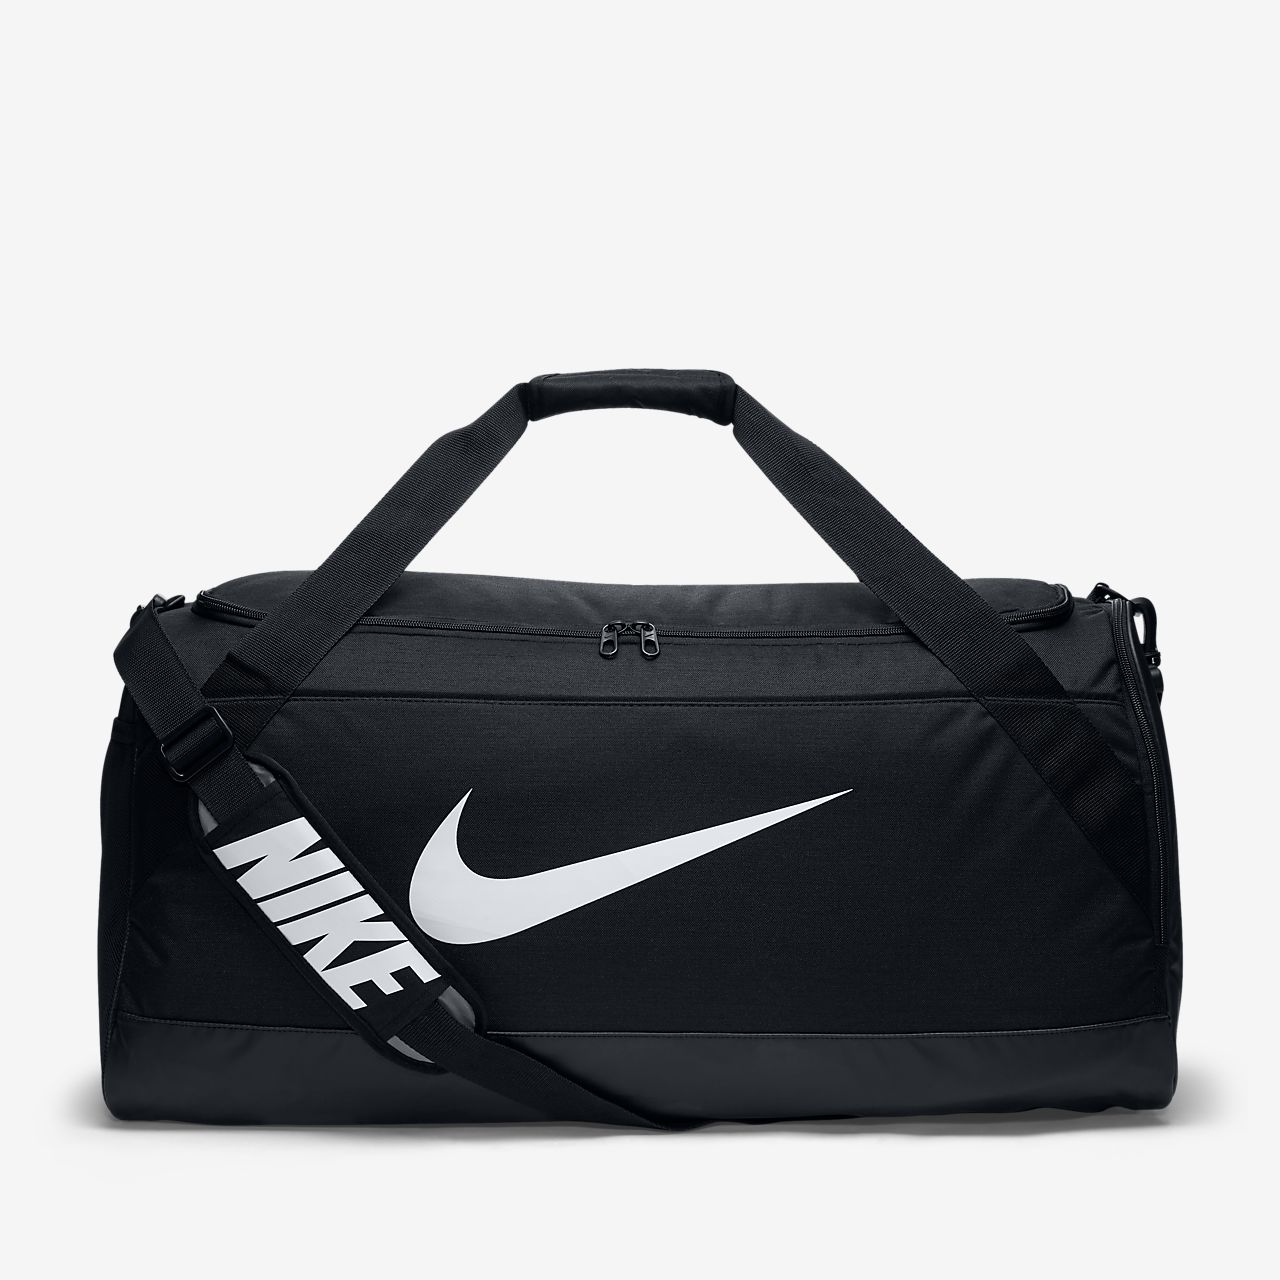 84817699fffe Nike Brasilia (Large) Training Duffel Bag. Nike.com AU